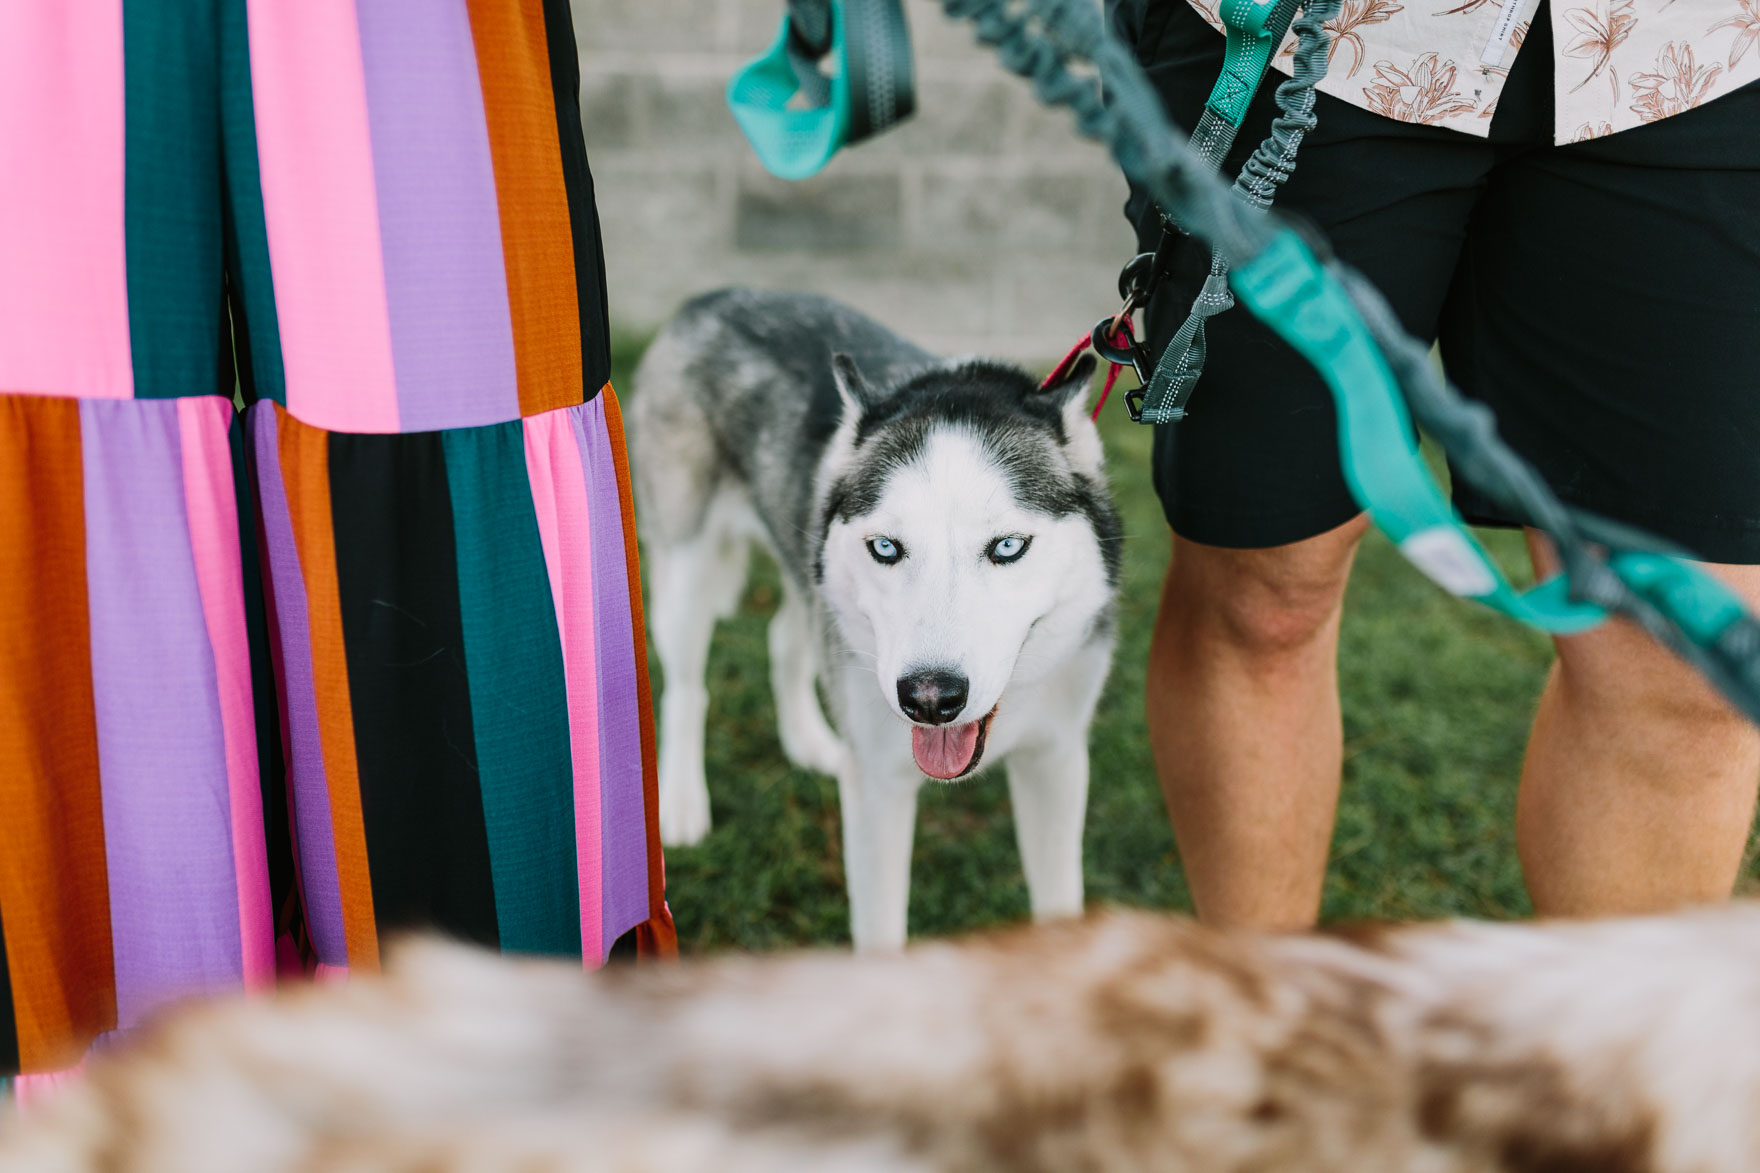 Huskies by the Sandy Shore – Photo by Let's Frolic Together